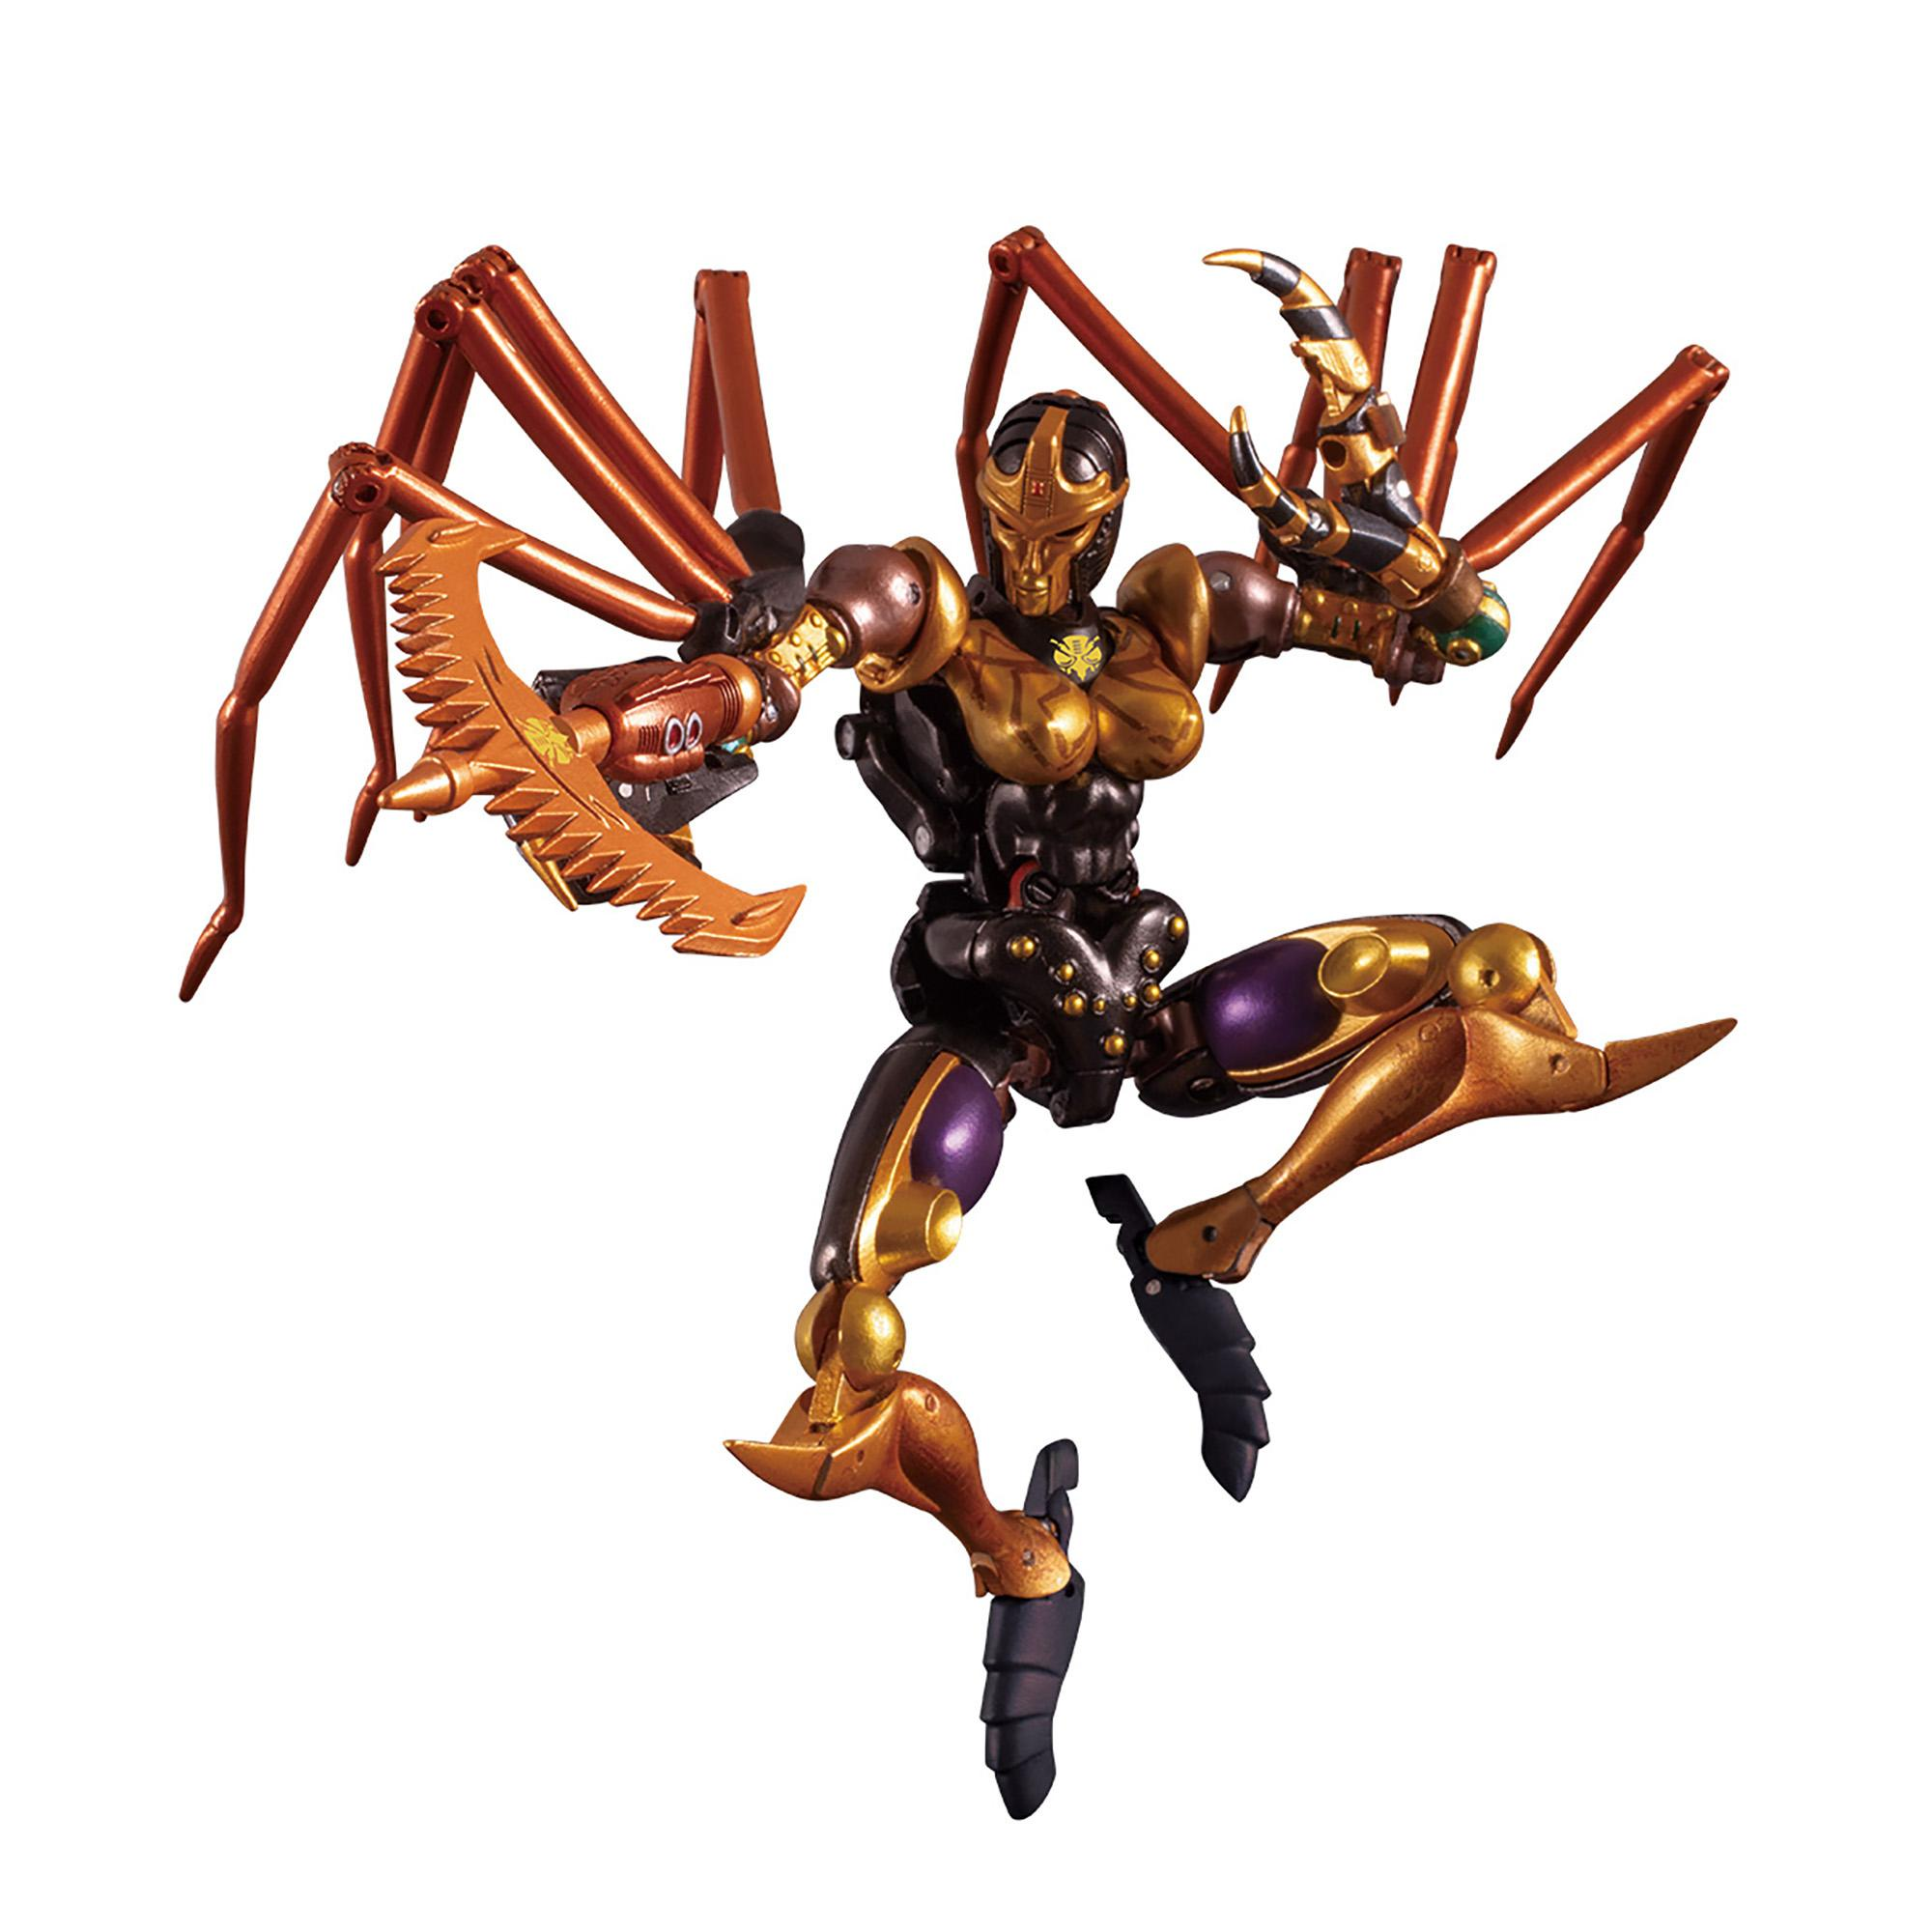 Transformers Masterpiece MP-46 Beast Wars Blackarachnia Authentic Takara Tomy Product As Sold In Japan, Collector Figure